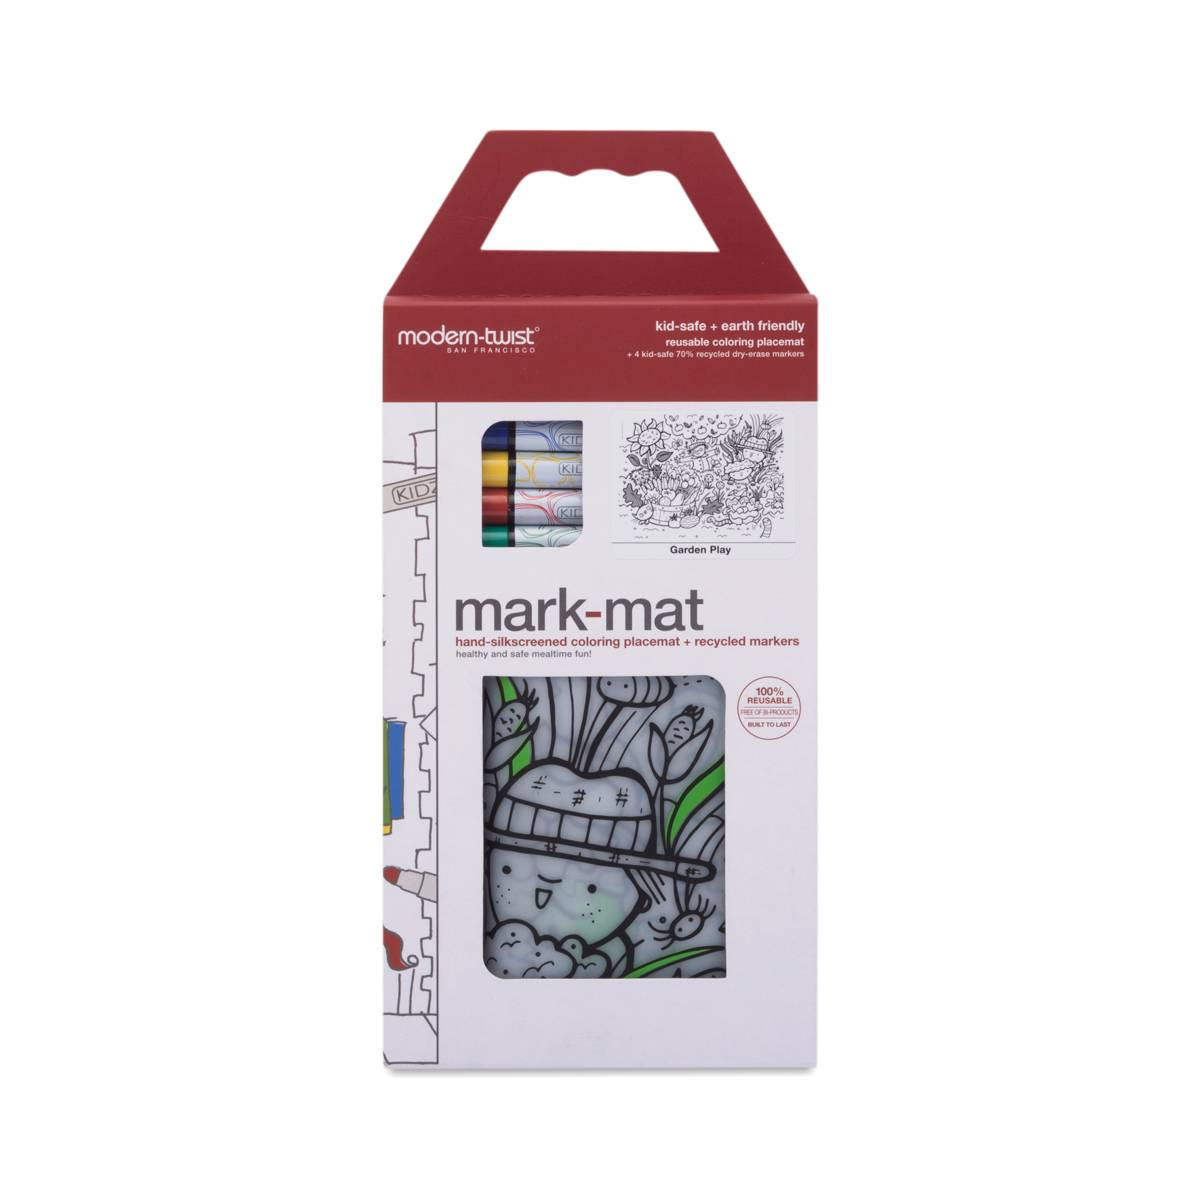 Garden Play Mark Mat 4 Markers By Modern Twist Thrive